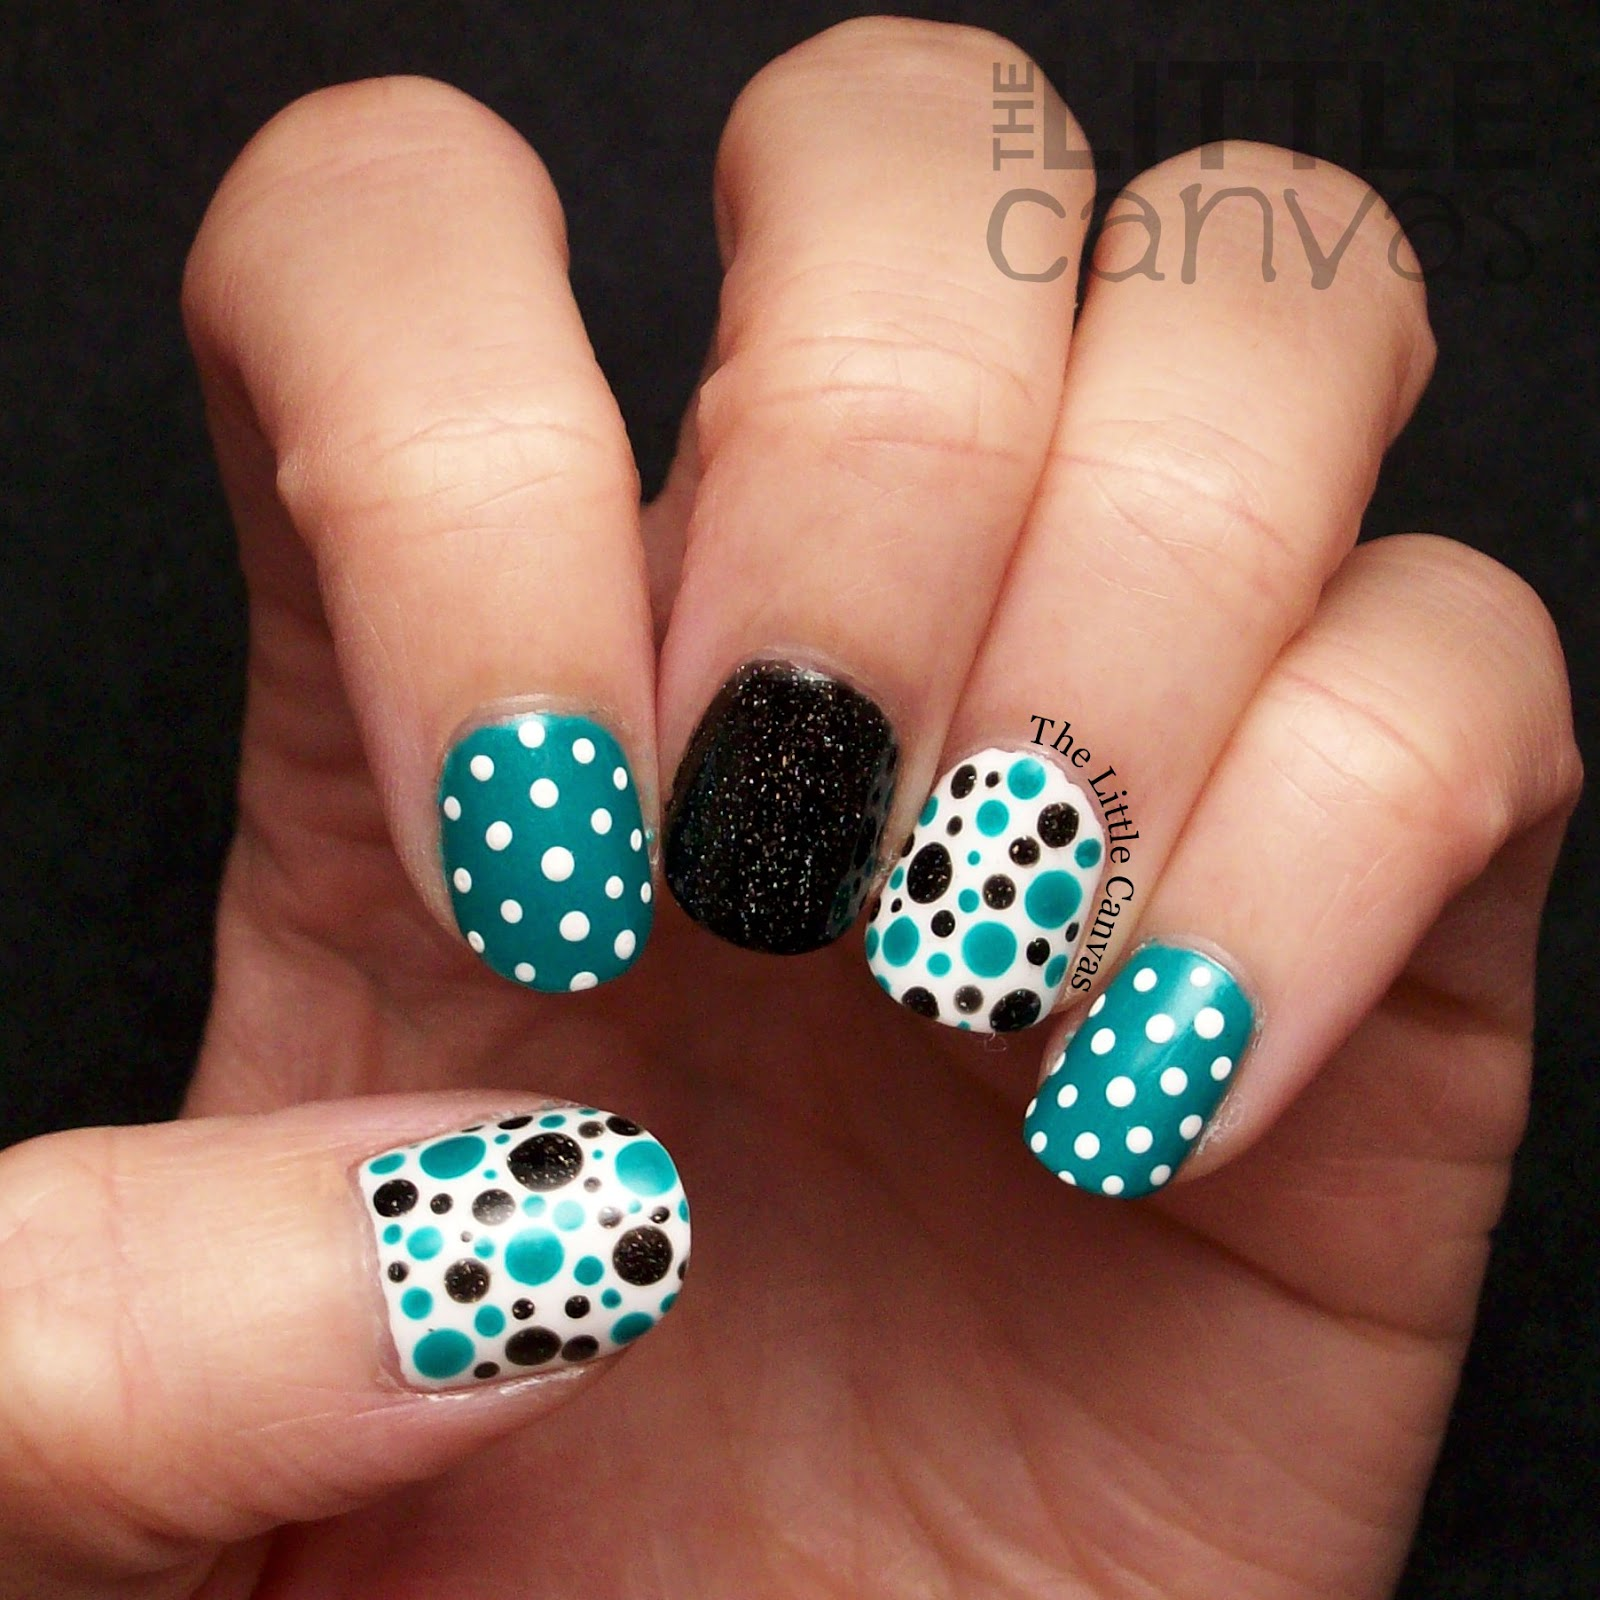 Awareness For Ovarian Cancer My Teal Manicure I Really Wasn T Sure What To Do So Went With Polka Dots You Can Never Go Wrong